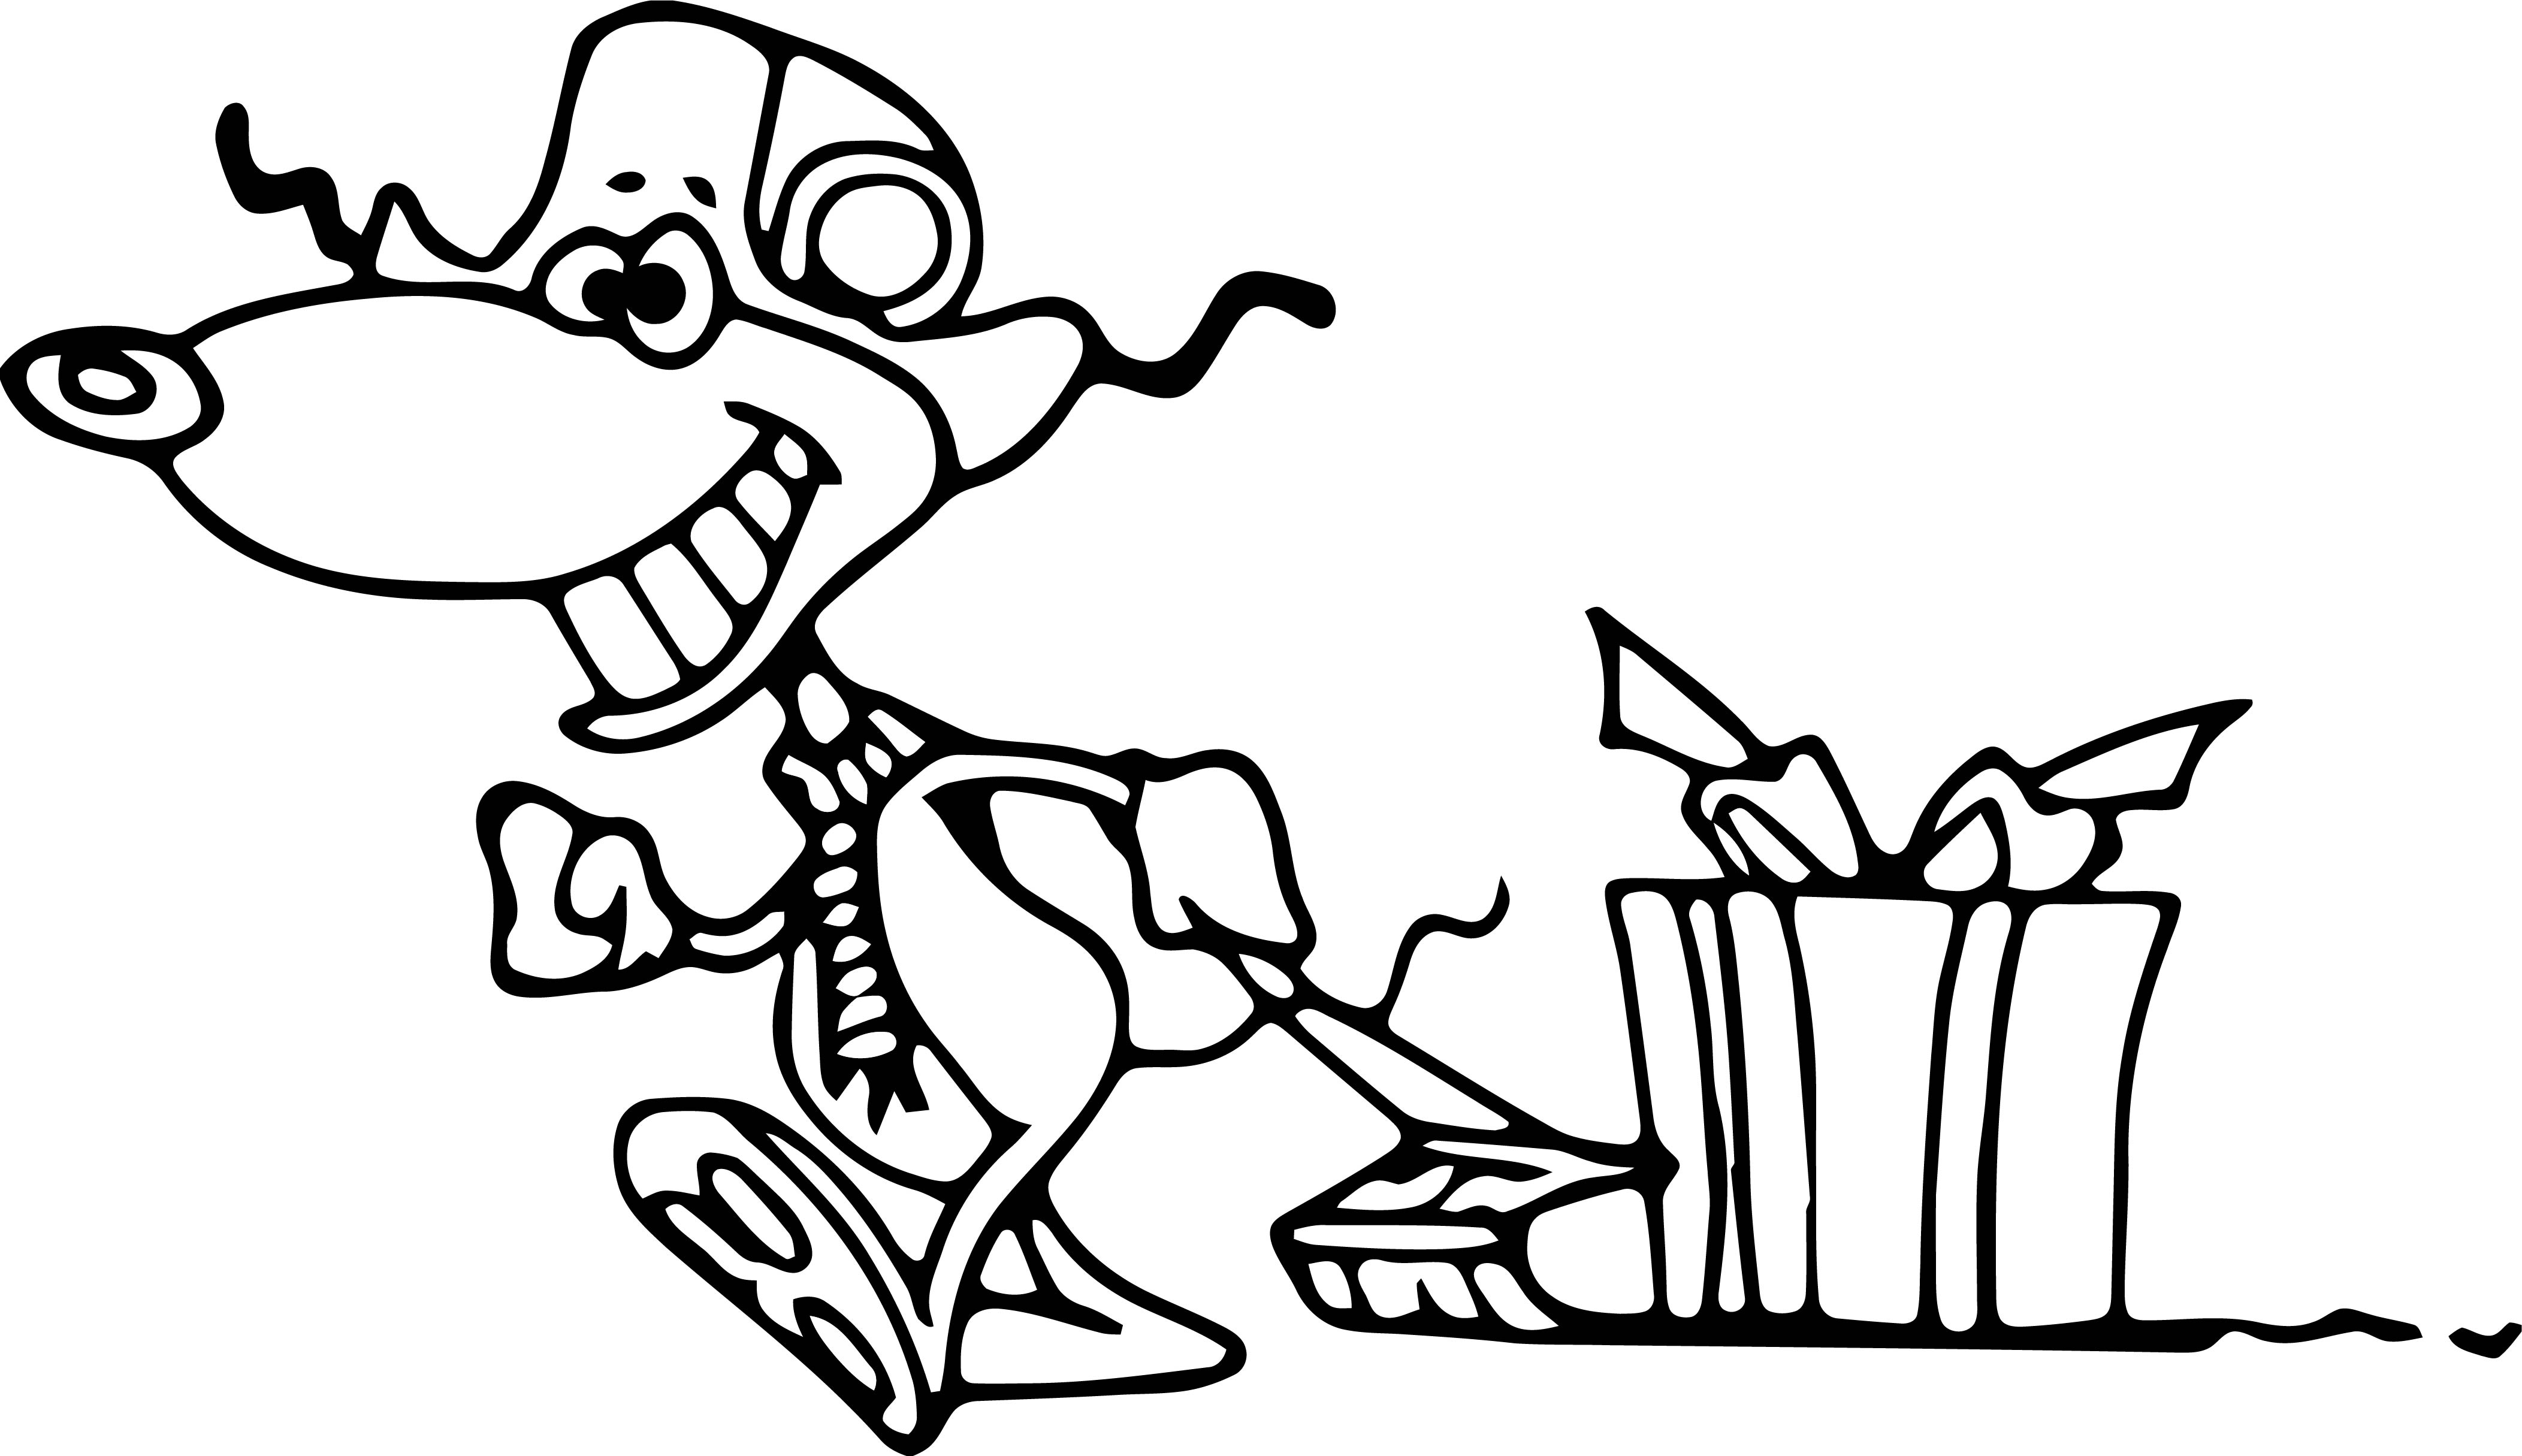 Mouse Jpeg Coloring Page 087